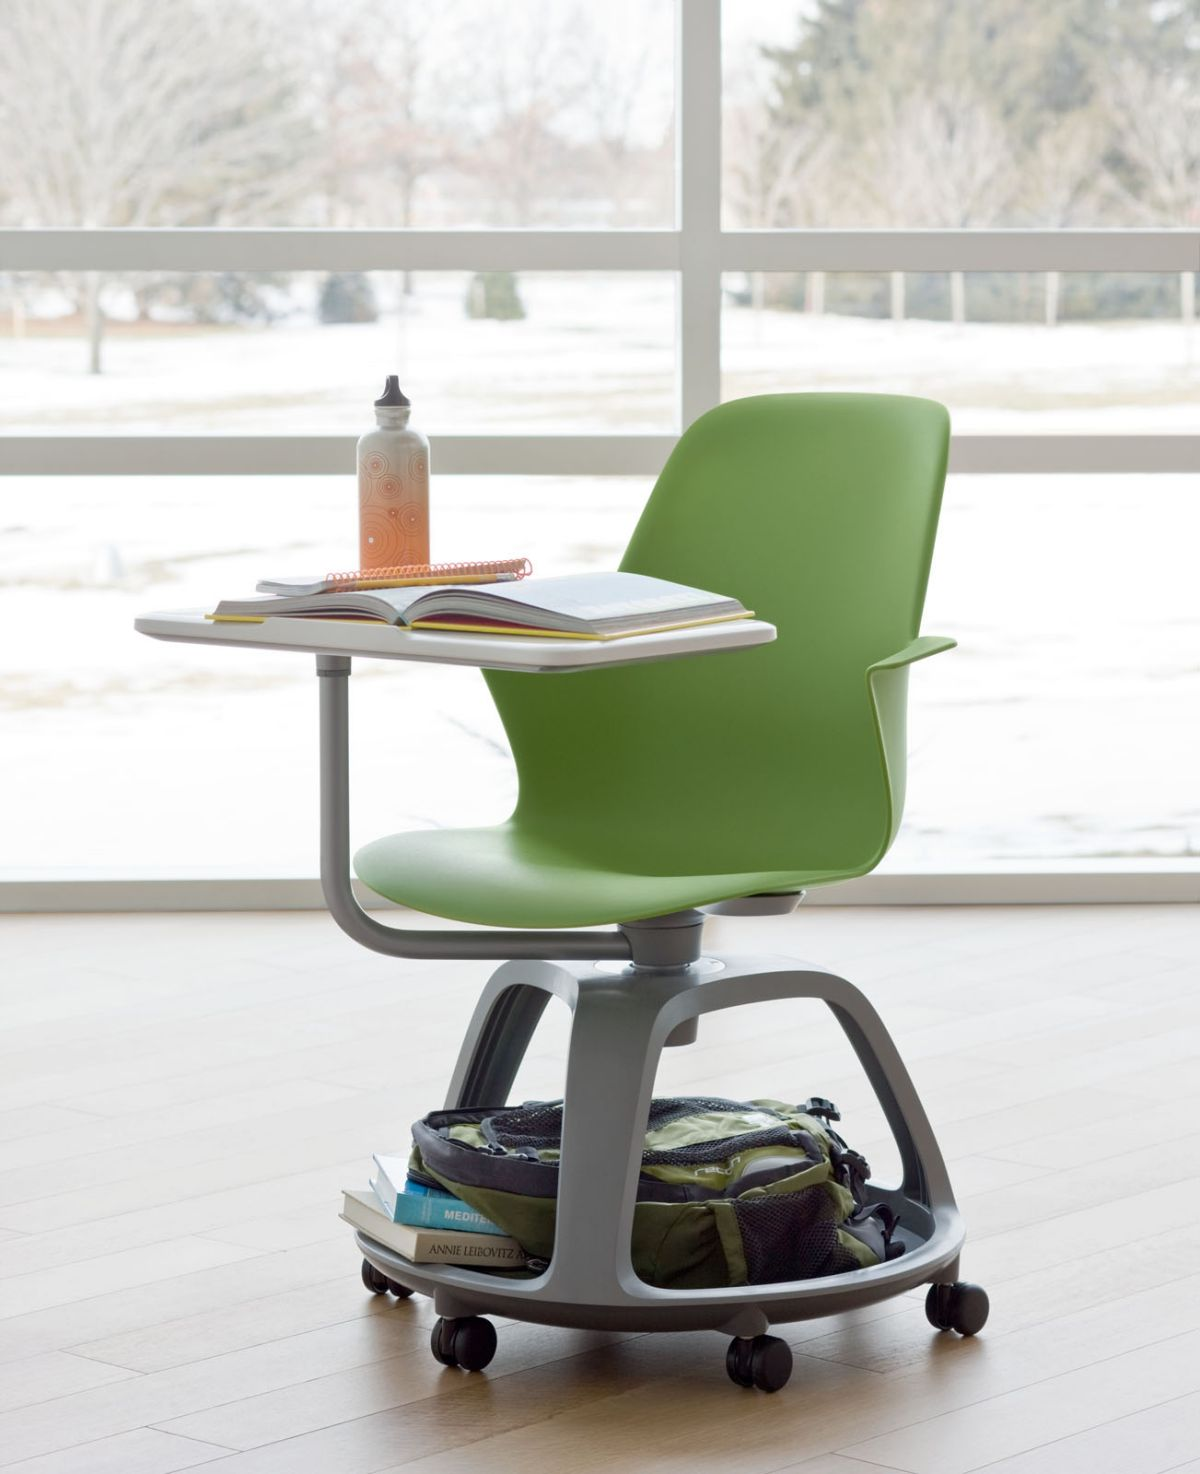 IDEO and Steelcase Unveils Schooldesk of the Future